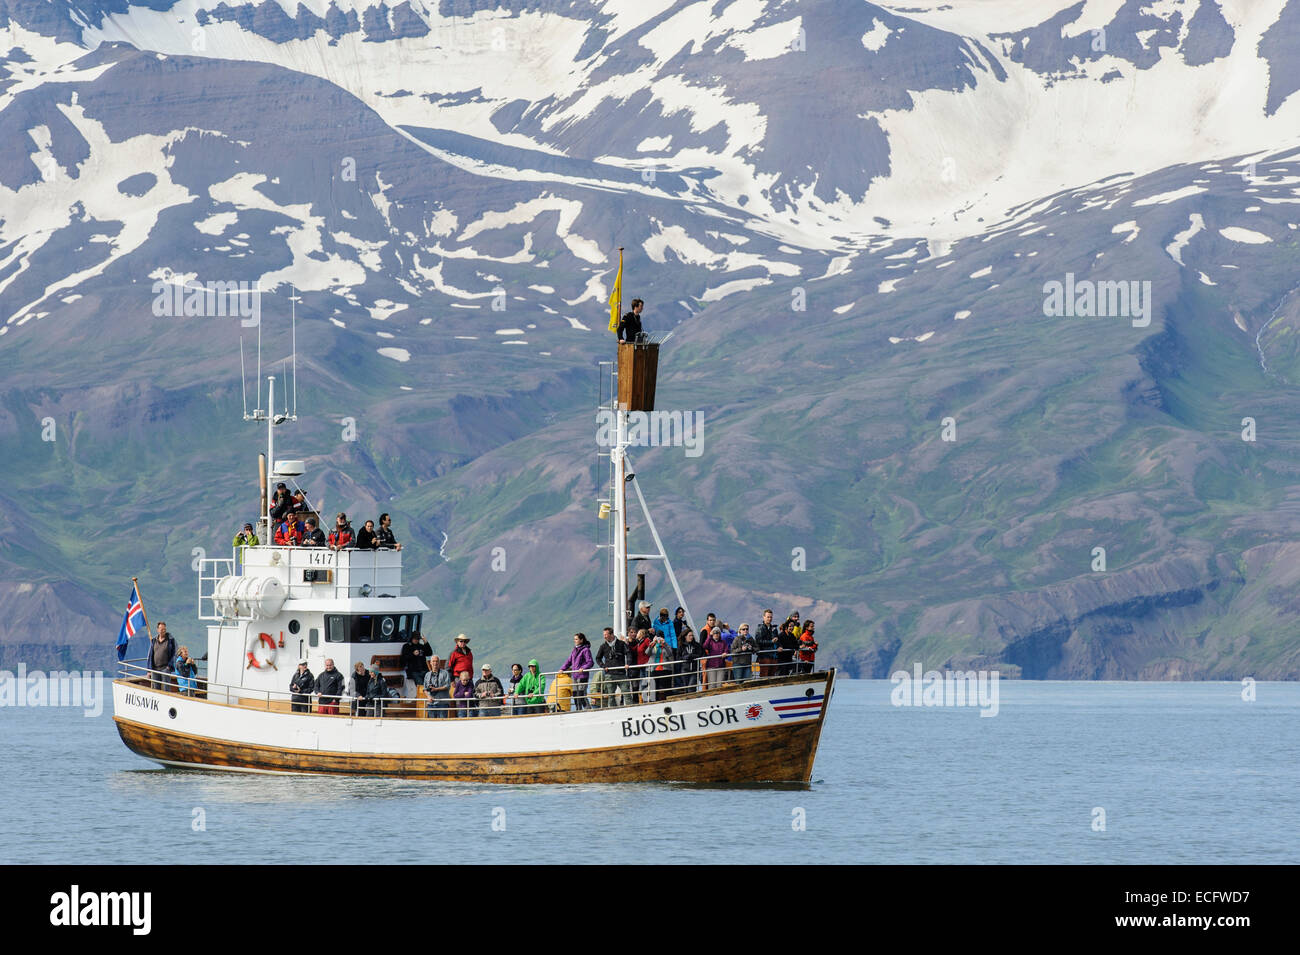 Commercial whale-watching boat, Skjálfandi Bay, Iceland. July 2012 - Stock Image